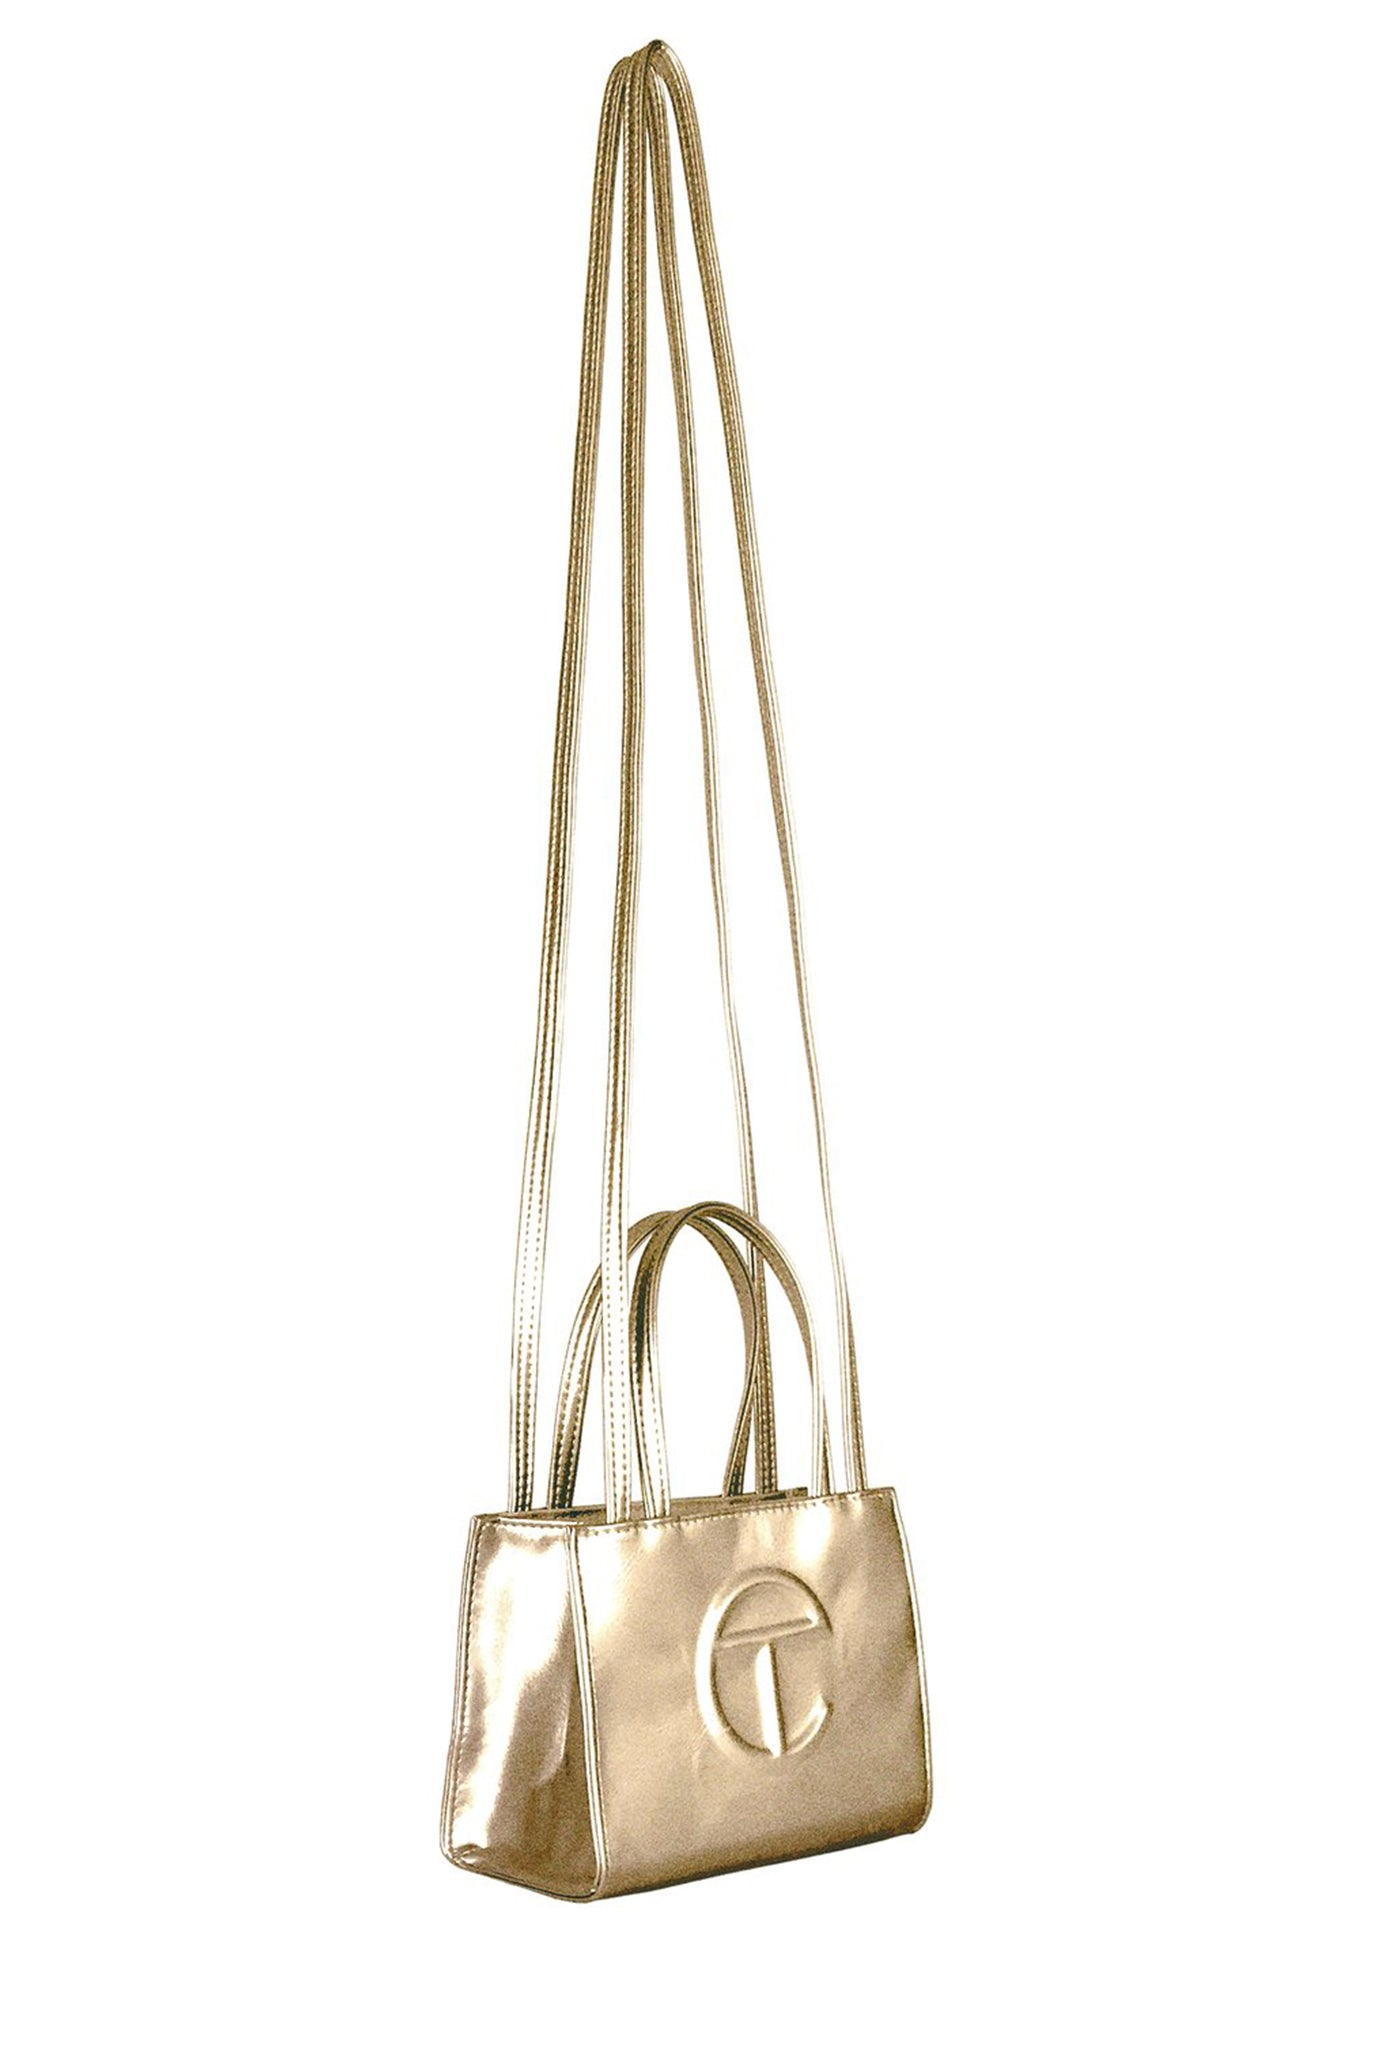 Telfar Small Shopping Bag, Gold